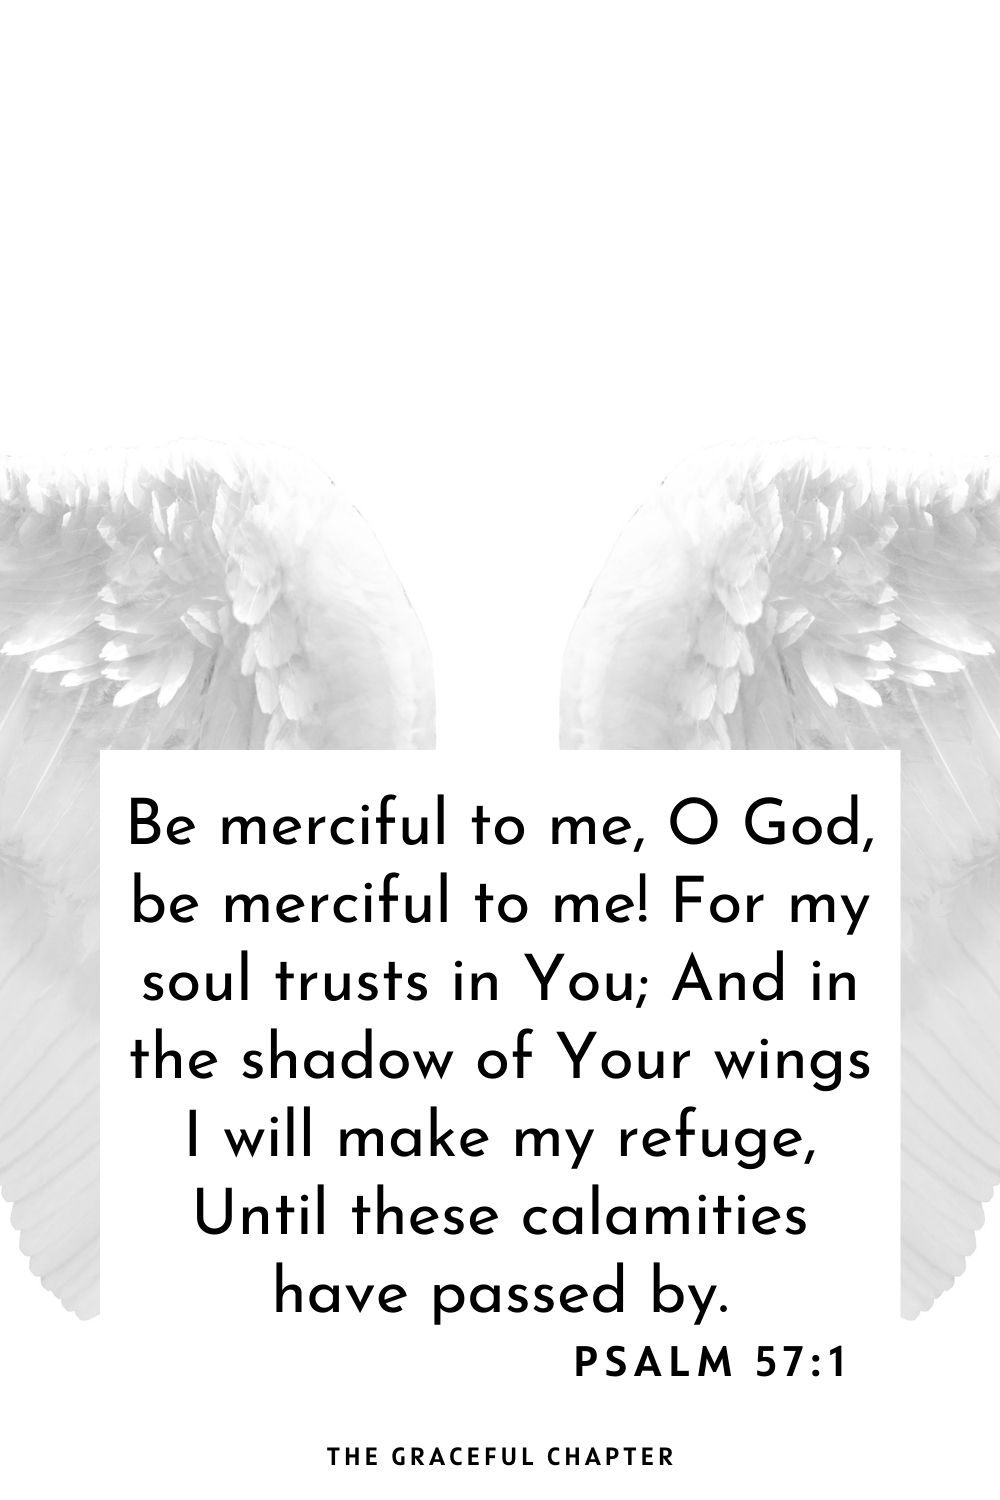 Be merciful to me, O God, be merciful to me! For my soul trusts in You; And in the shadow of Your wings I will make my refuge, Until these calamities have passed by. Psalm 57:1